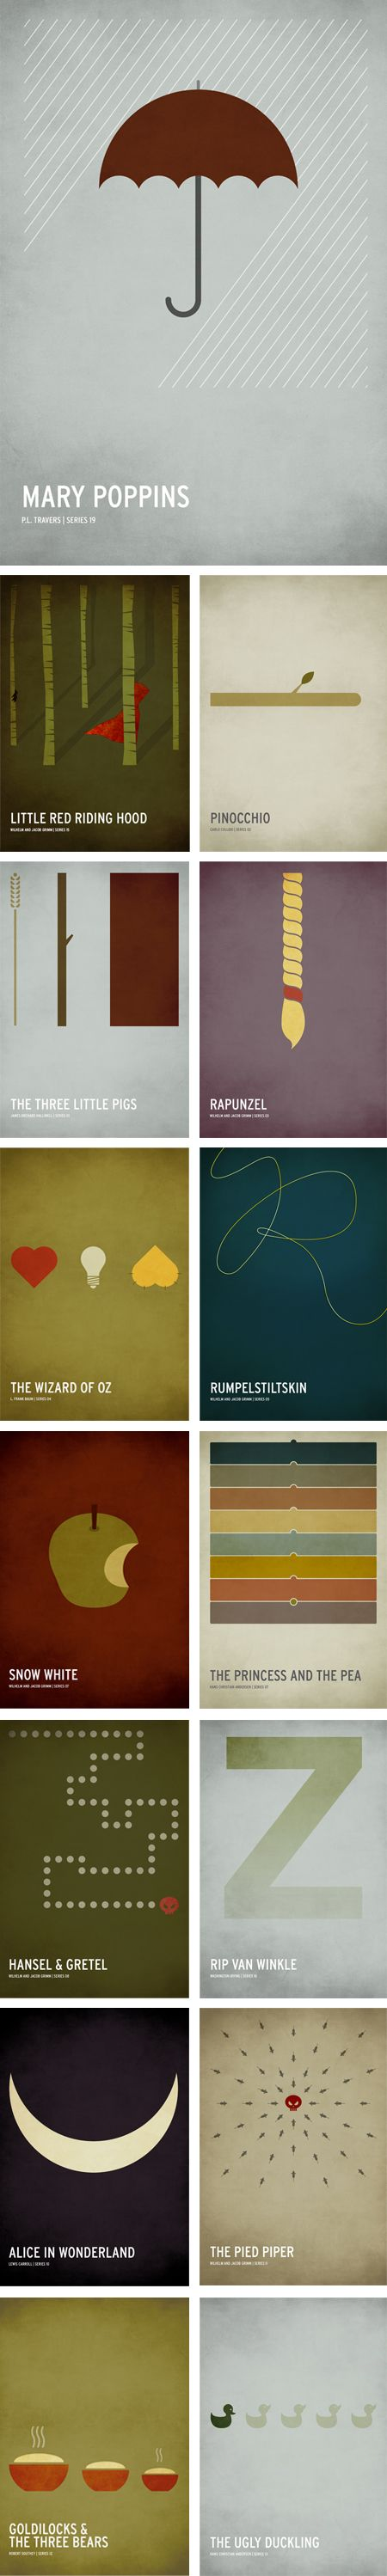 Christian Jackson of Square Inch Design, created a series of hyper-minimalist poster designs for a myriad of classic children's stories we've grown to know and love. Check out the poster's below (buy the prints here) and be sure to visit the Square Inch Design Blog to see more work from Christian and designers from all over the…